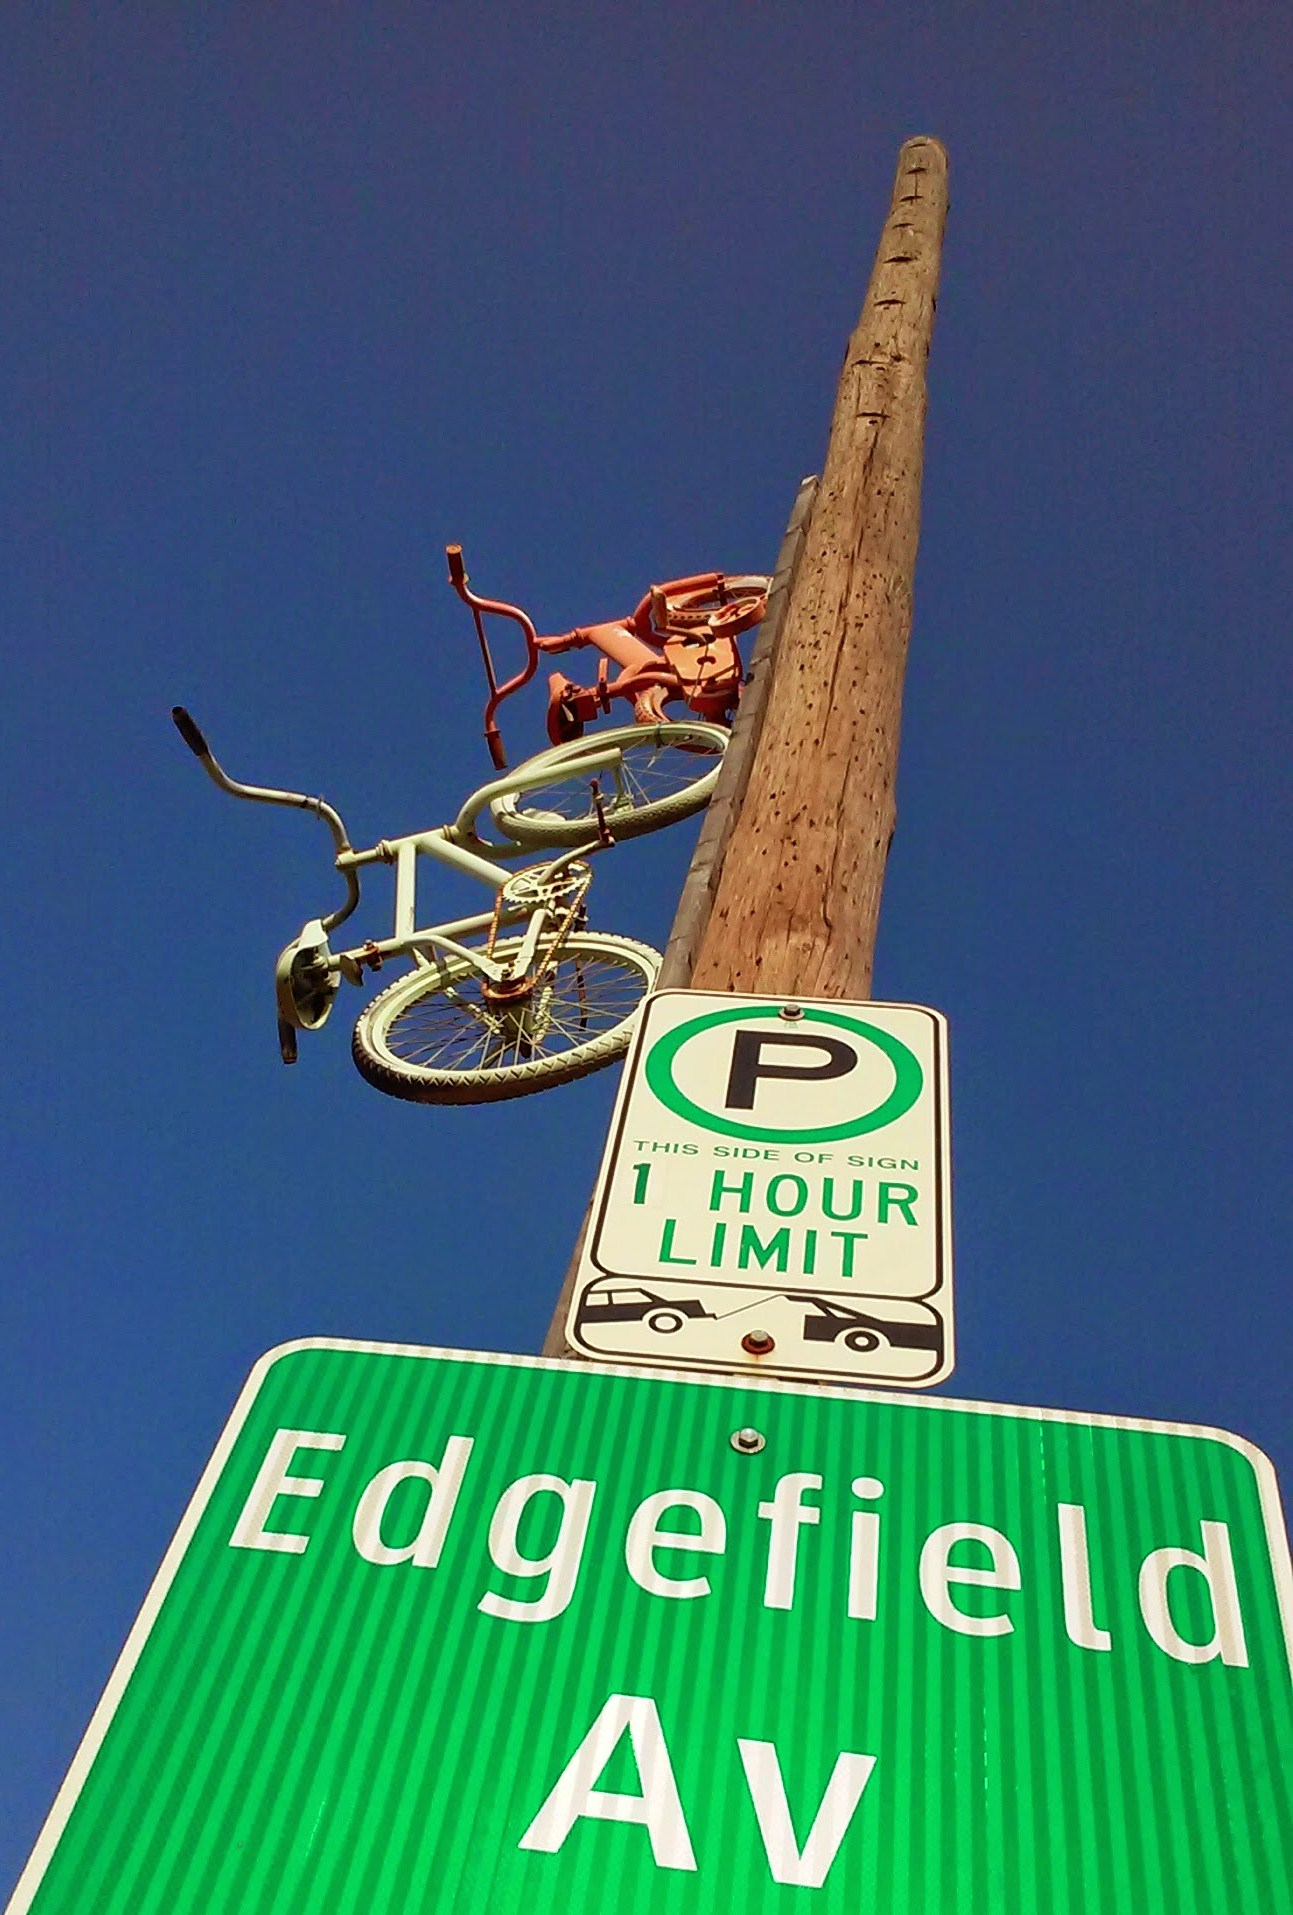 Edgefield Ave: Oak Cliff's North-South Cycling Route